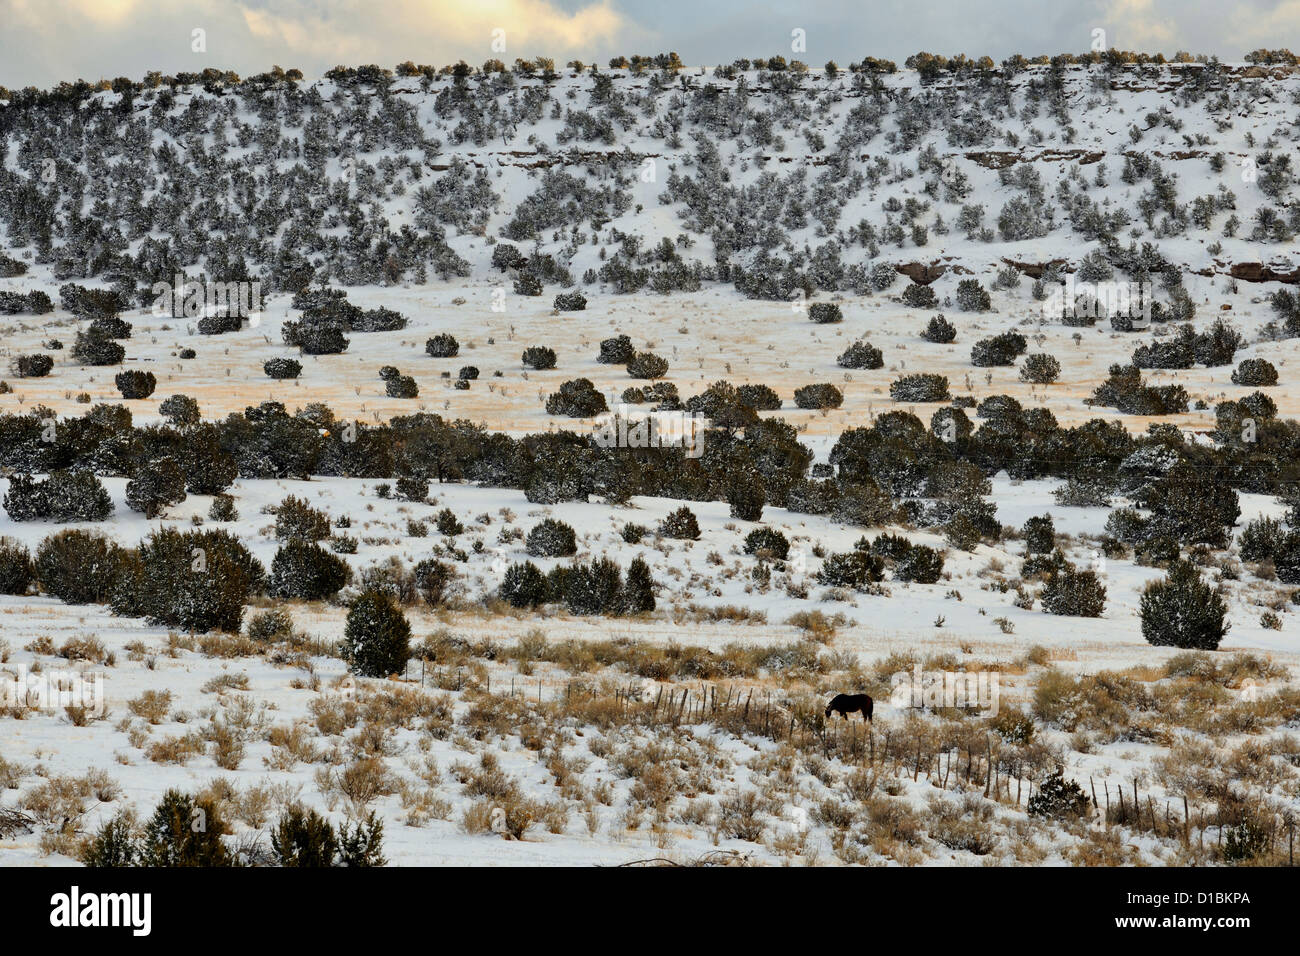 A dusting of snow in the Cibola National Forest, with grazing horse, near Mountainair, New Mexico, USA Stock Photo